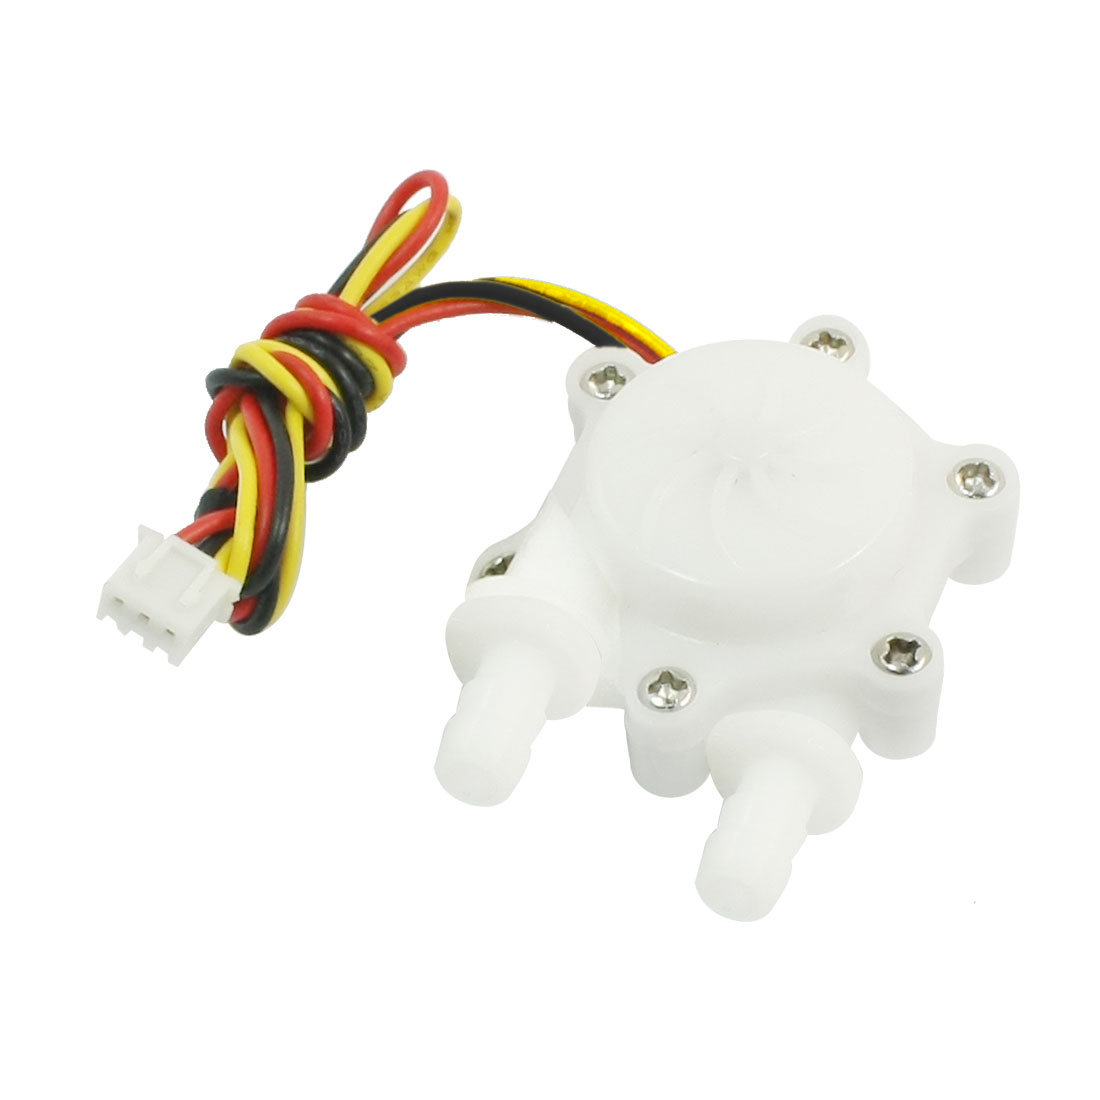 One Way 360 Degree 6mm Inlet Outlet Outer Dia Water Flow Sensor 0.2-2.5L/min